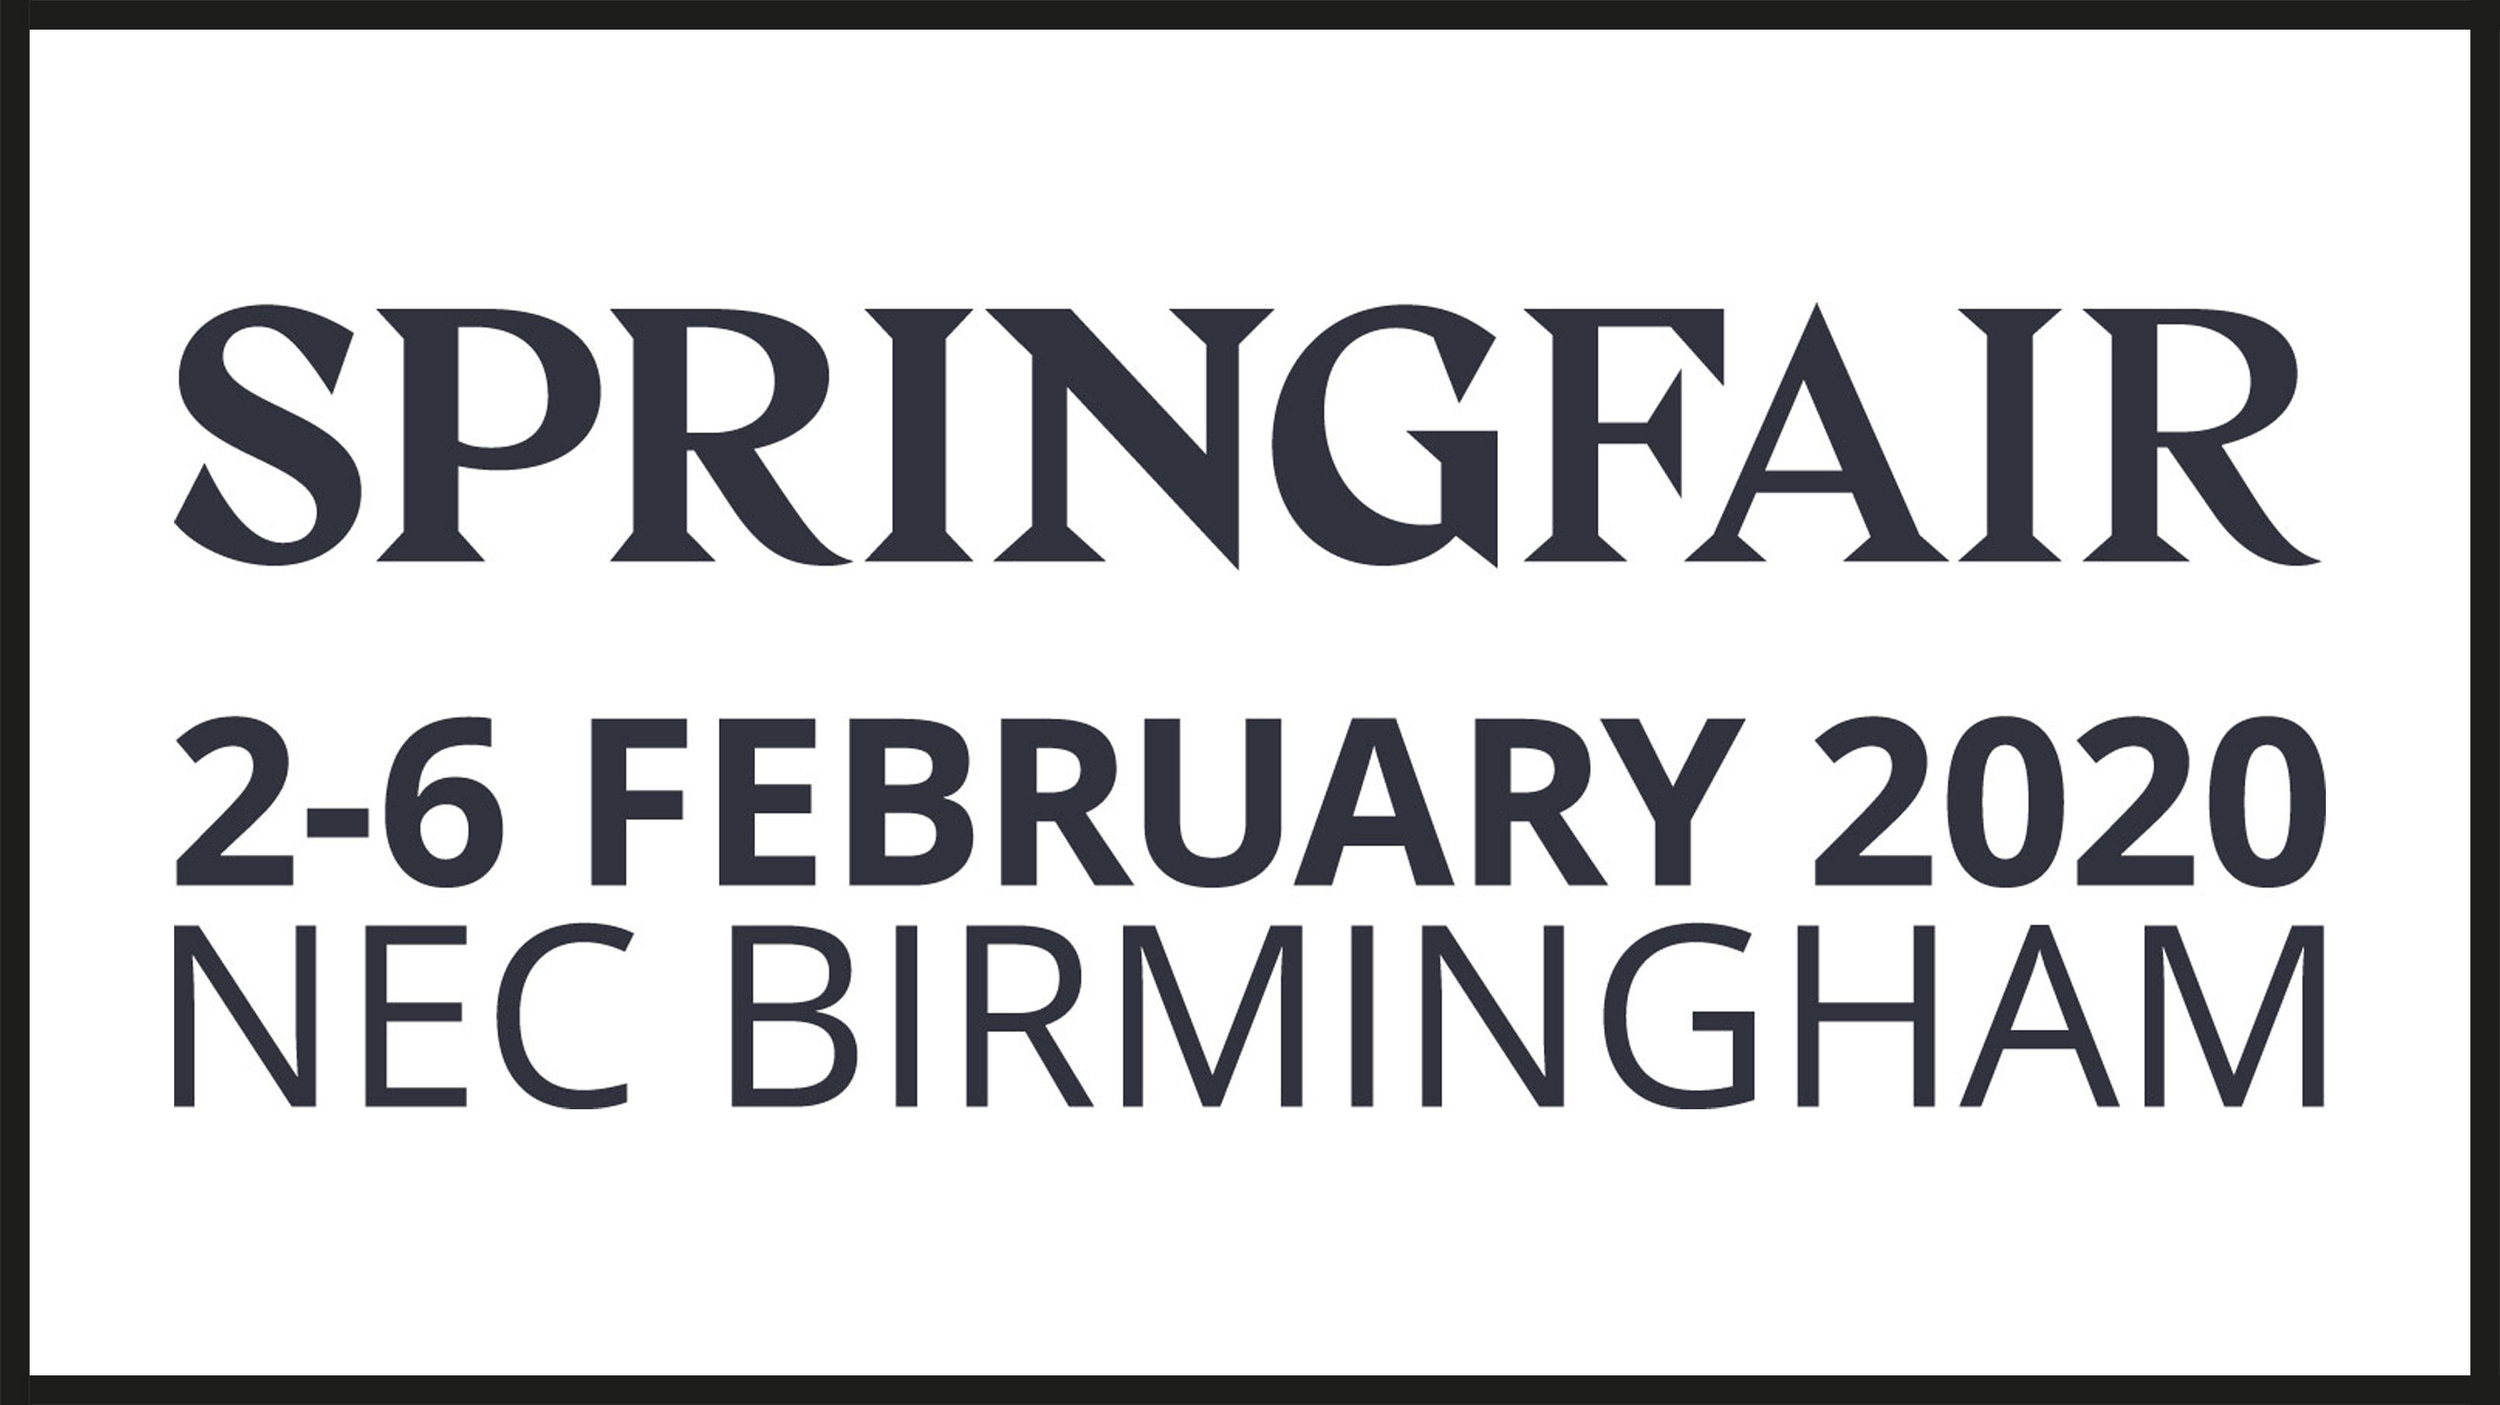 NEC Spring Fair - 2nd - 6th February 2020NEC BirminghamStand 6C91